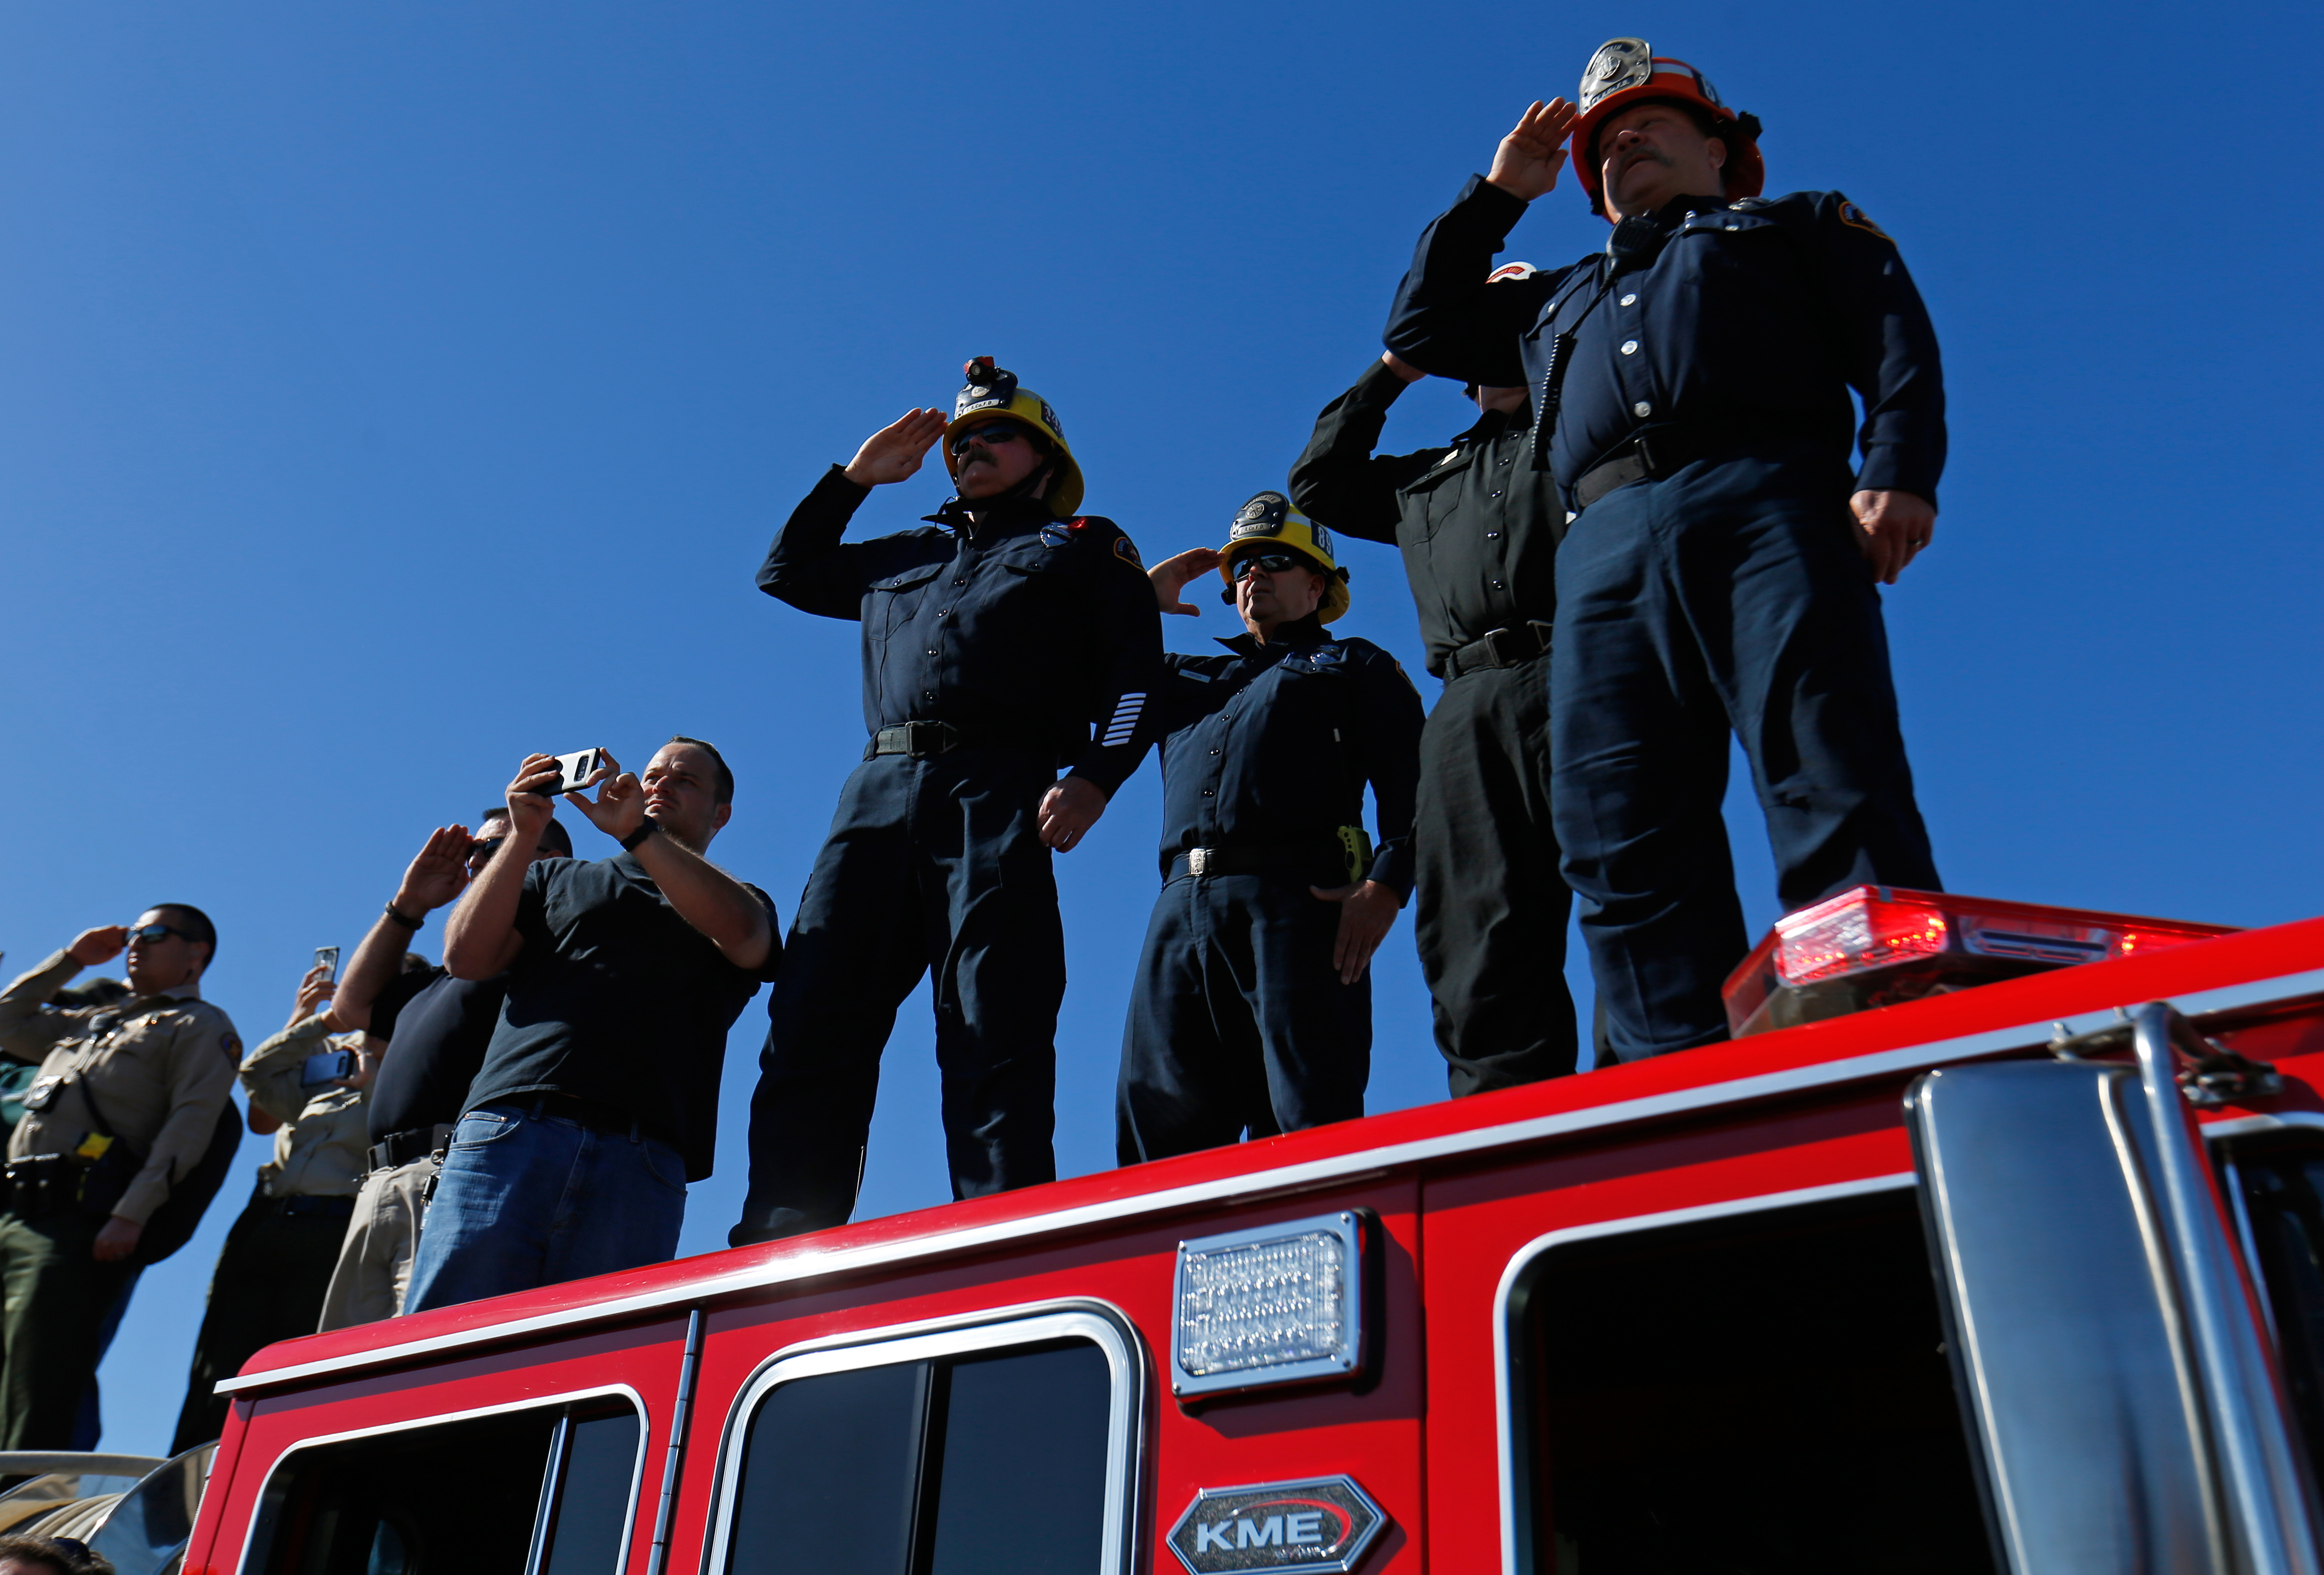 Los Angeles County firefighters salute from an overpass as a procession for the body of Sergeant Ron Helus, who died in a shooting incident at a Thousand Oaks bar, drives down Ventura HIghway 101 in Thousand Oaks